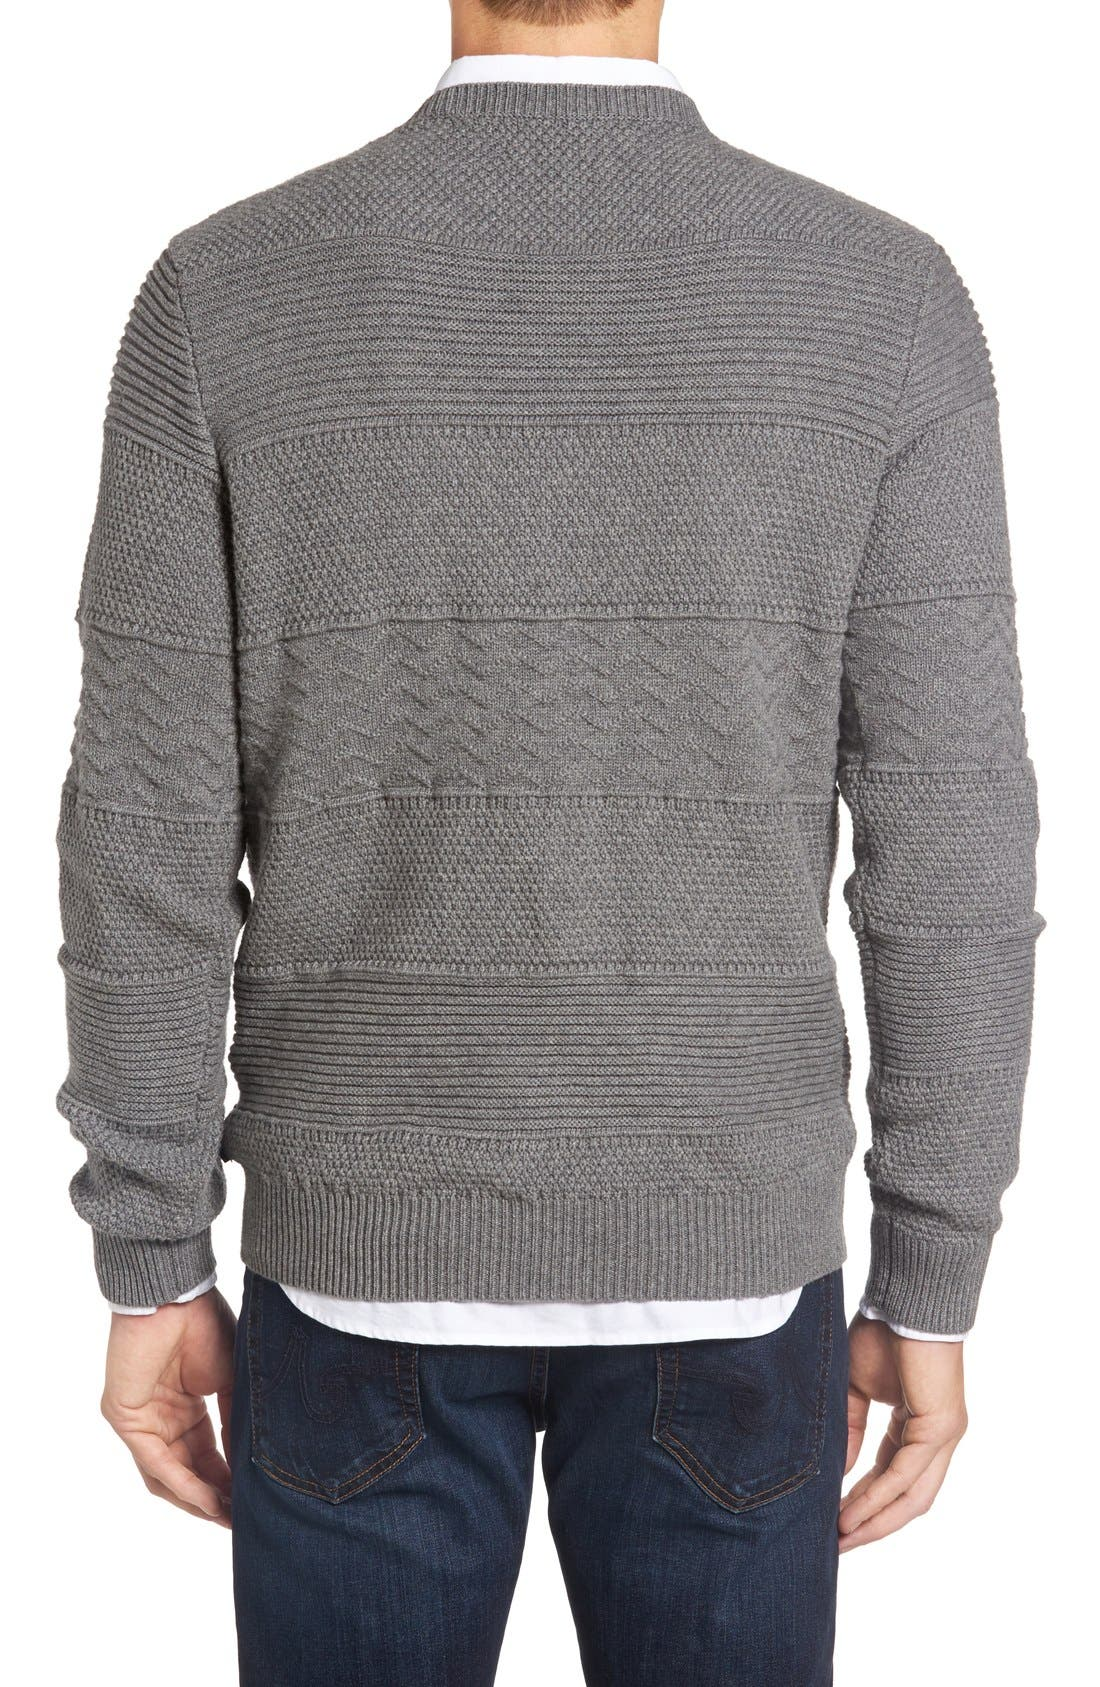 Structure Crewneck Sweater,                             Alternate thumbnail 2, color,                             Grey Melange